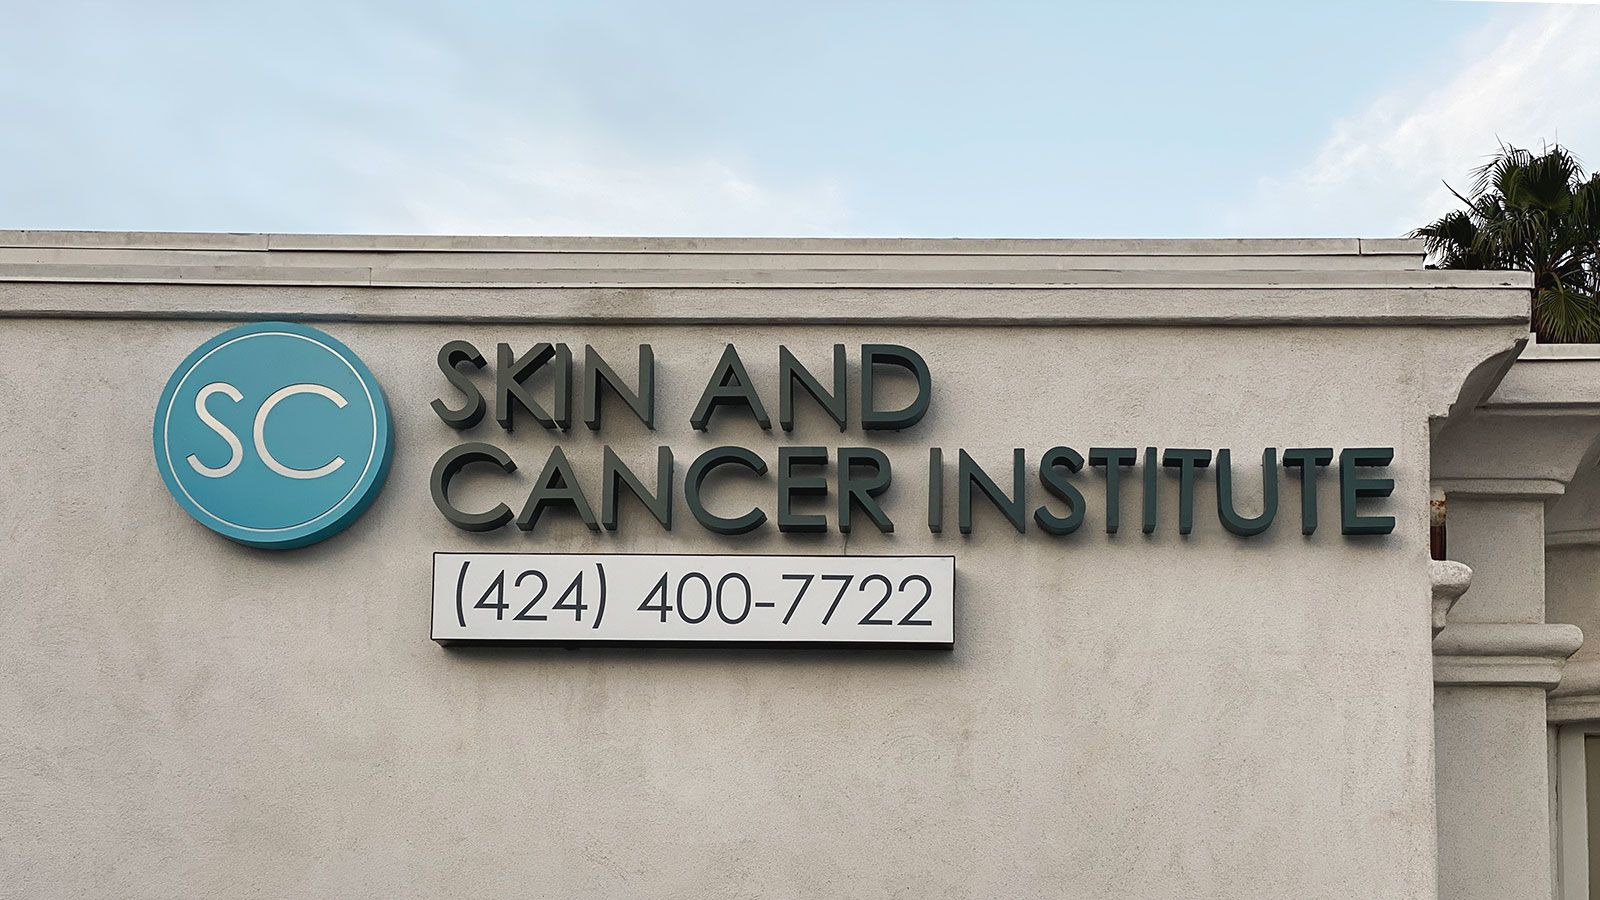 skin and cancer institute building sign